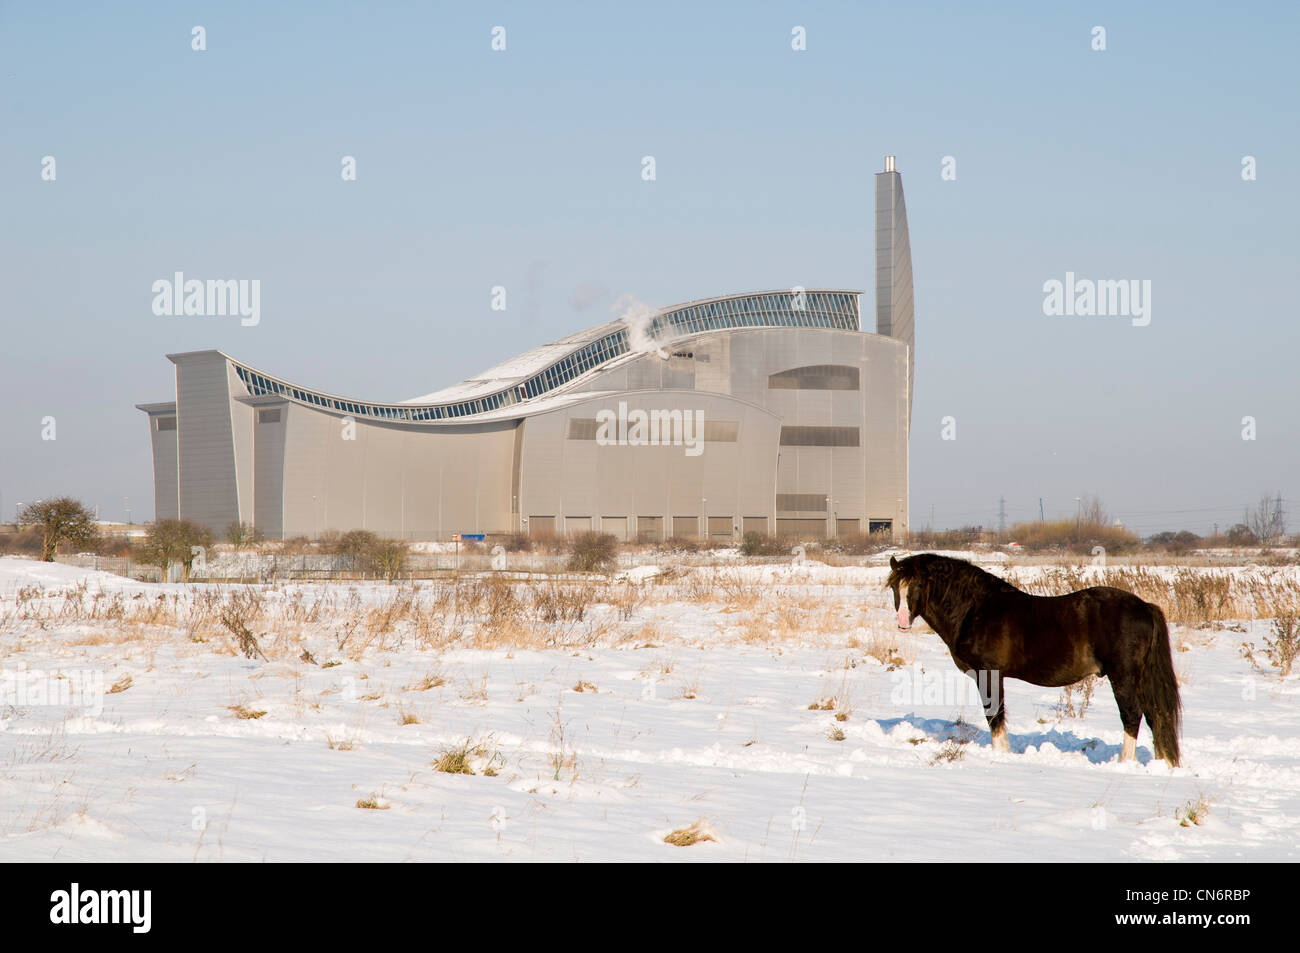 A horse standing in the snow in front of the Thames Water sewage sludge incinerator. Bexley, Kent. February. - Stock Image